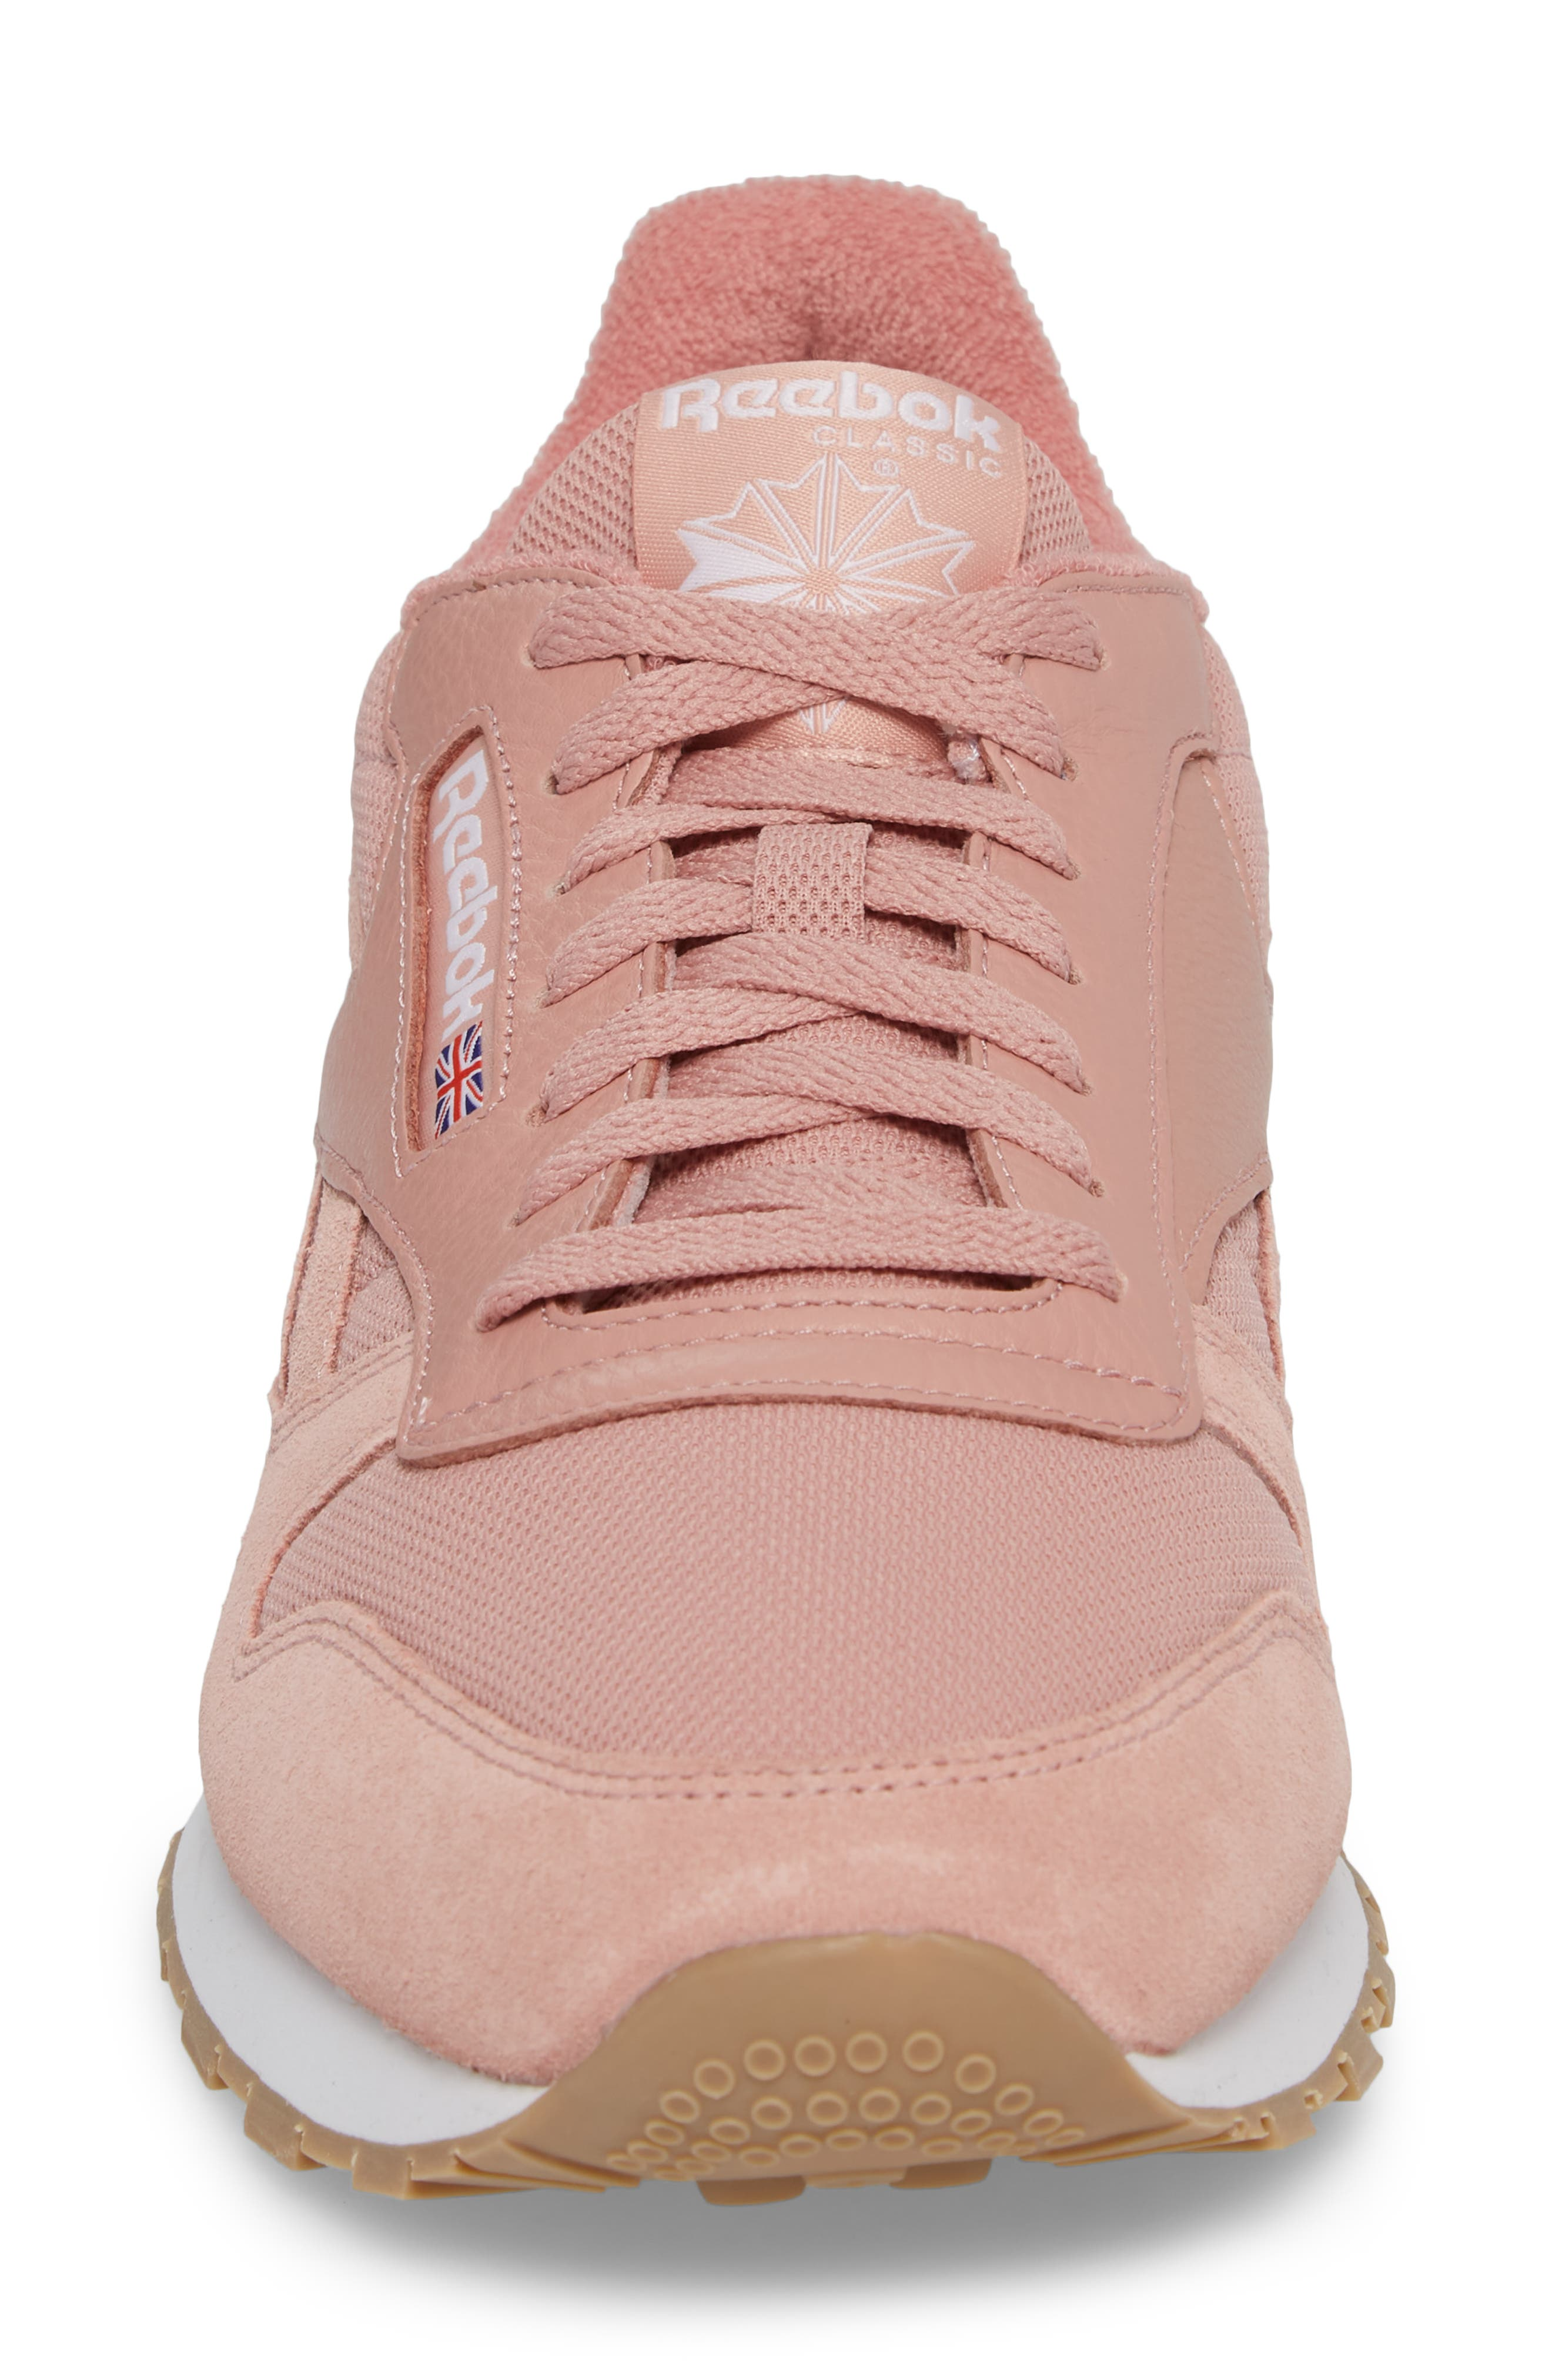 ESTL Classic Leather Sneaker,                             Alternate thumbnail 4, color,                             Chalk Pink/ White